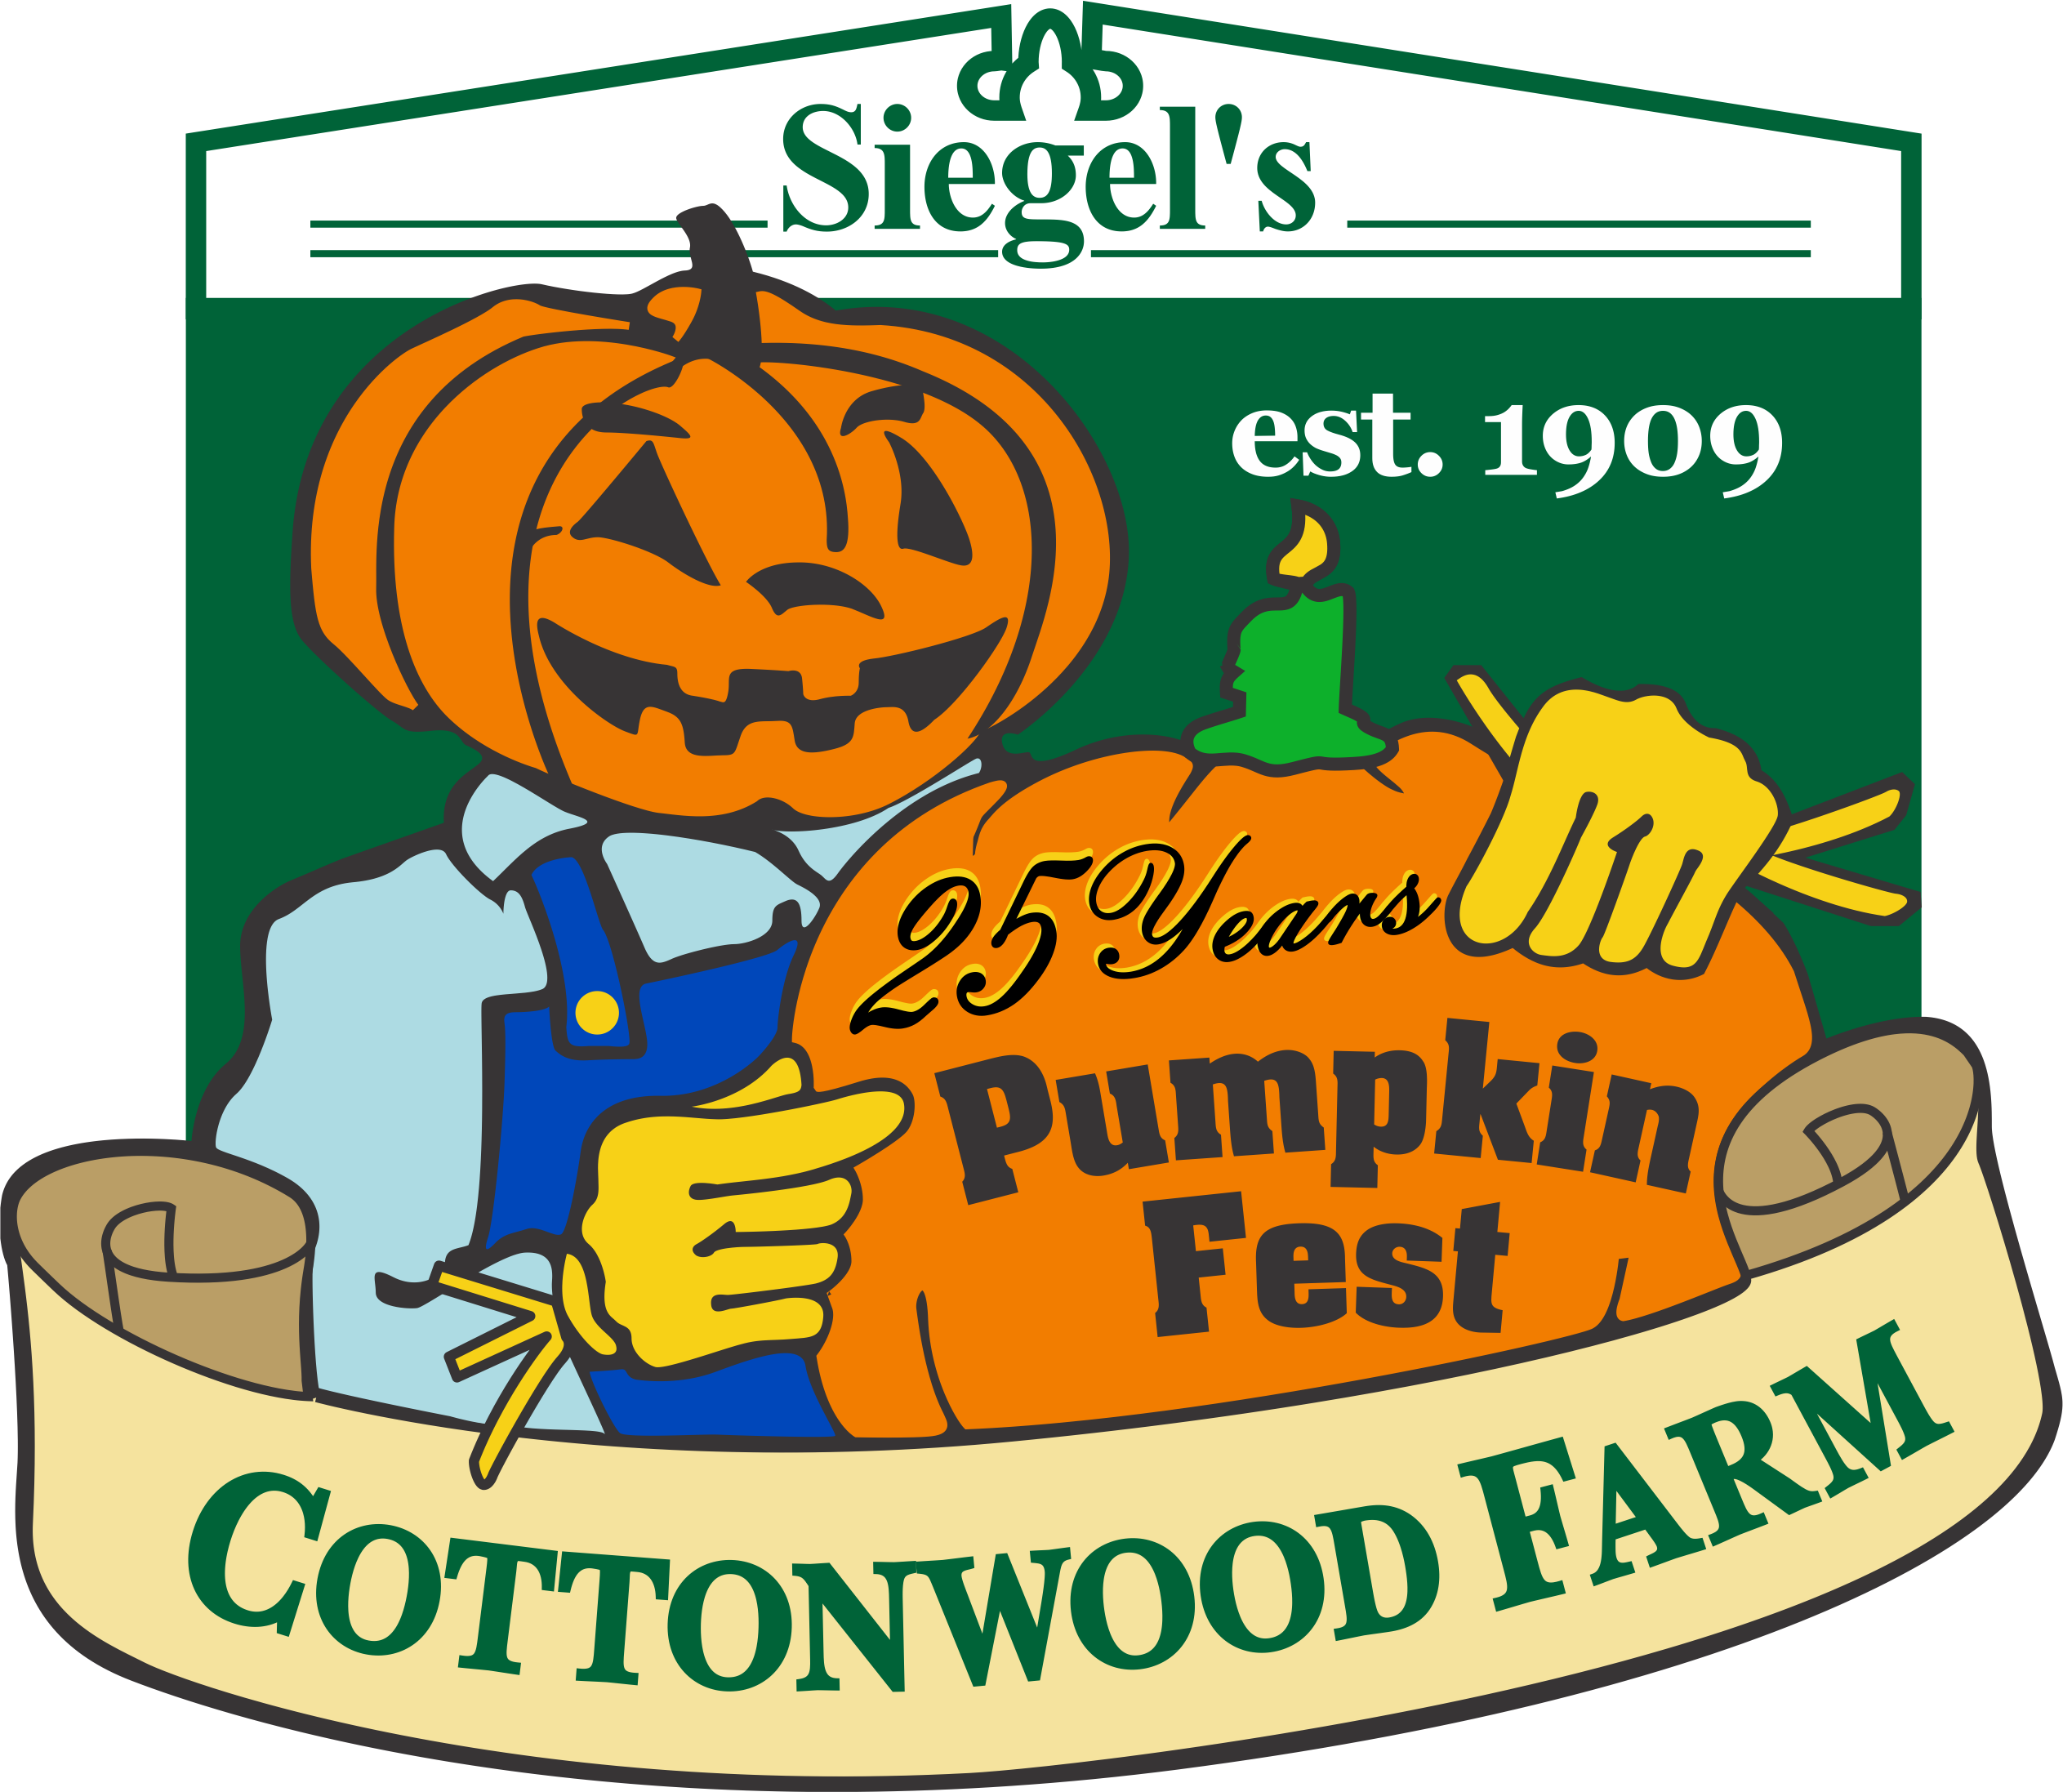 Siegelss Cottonwood Pumpkin Farm 25 years